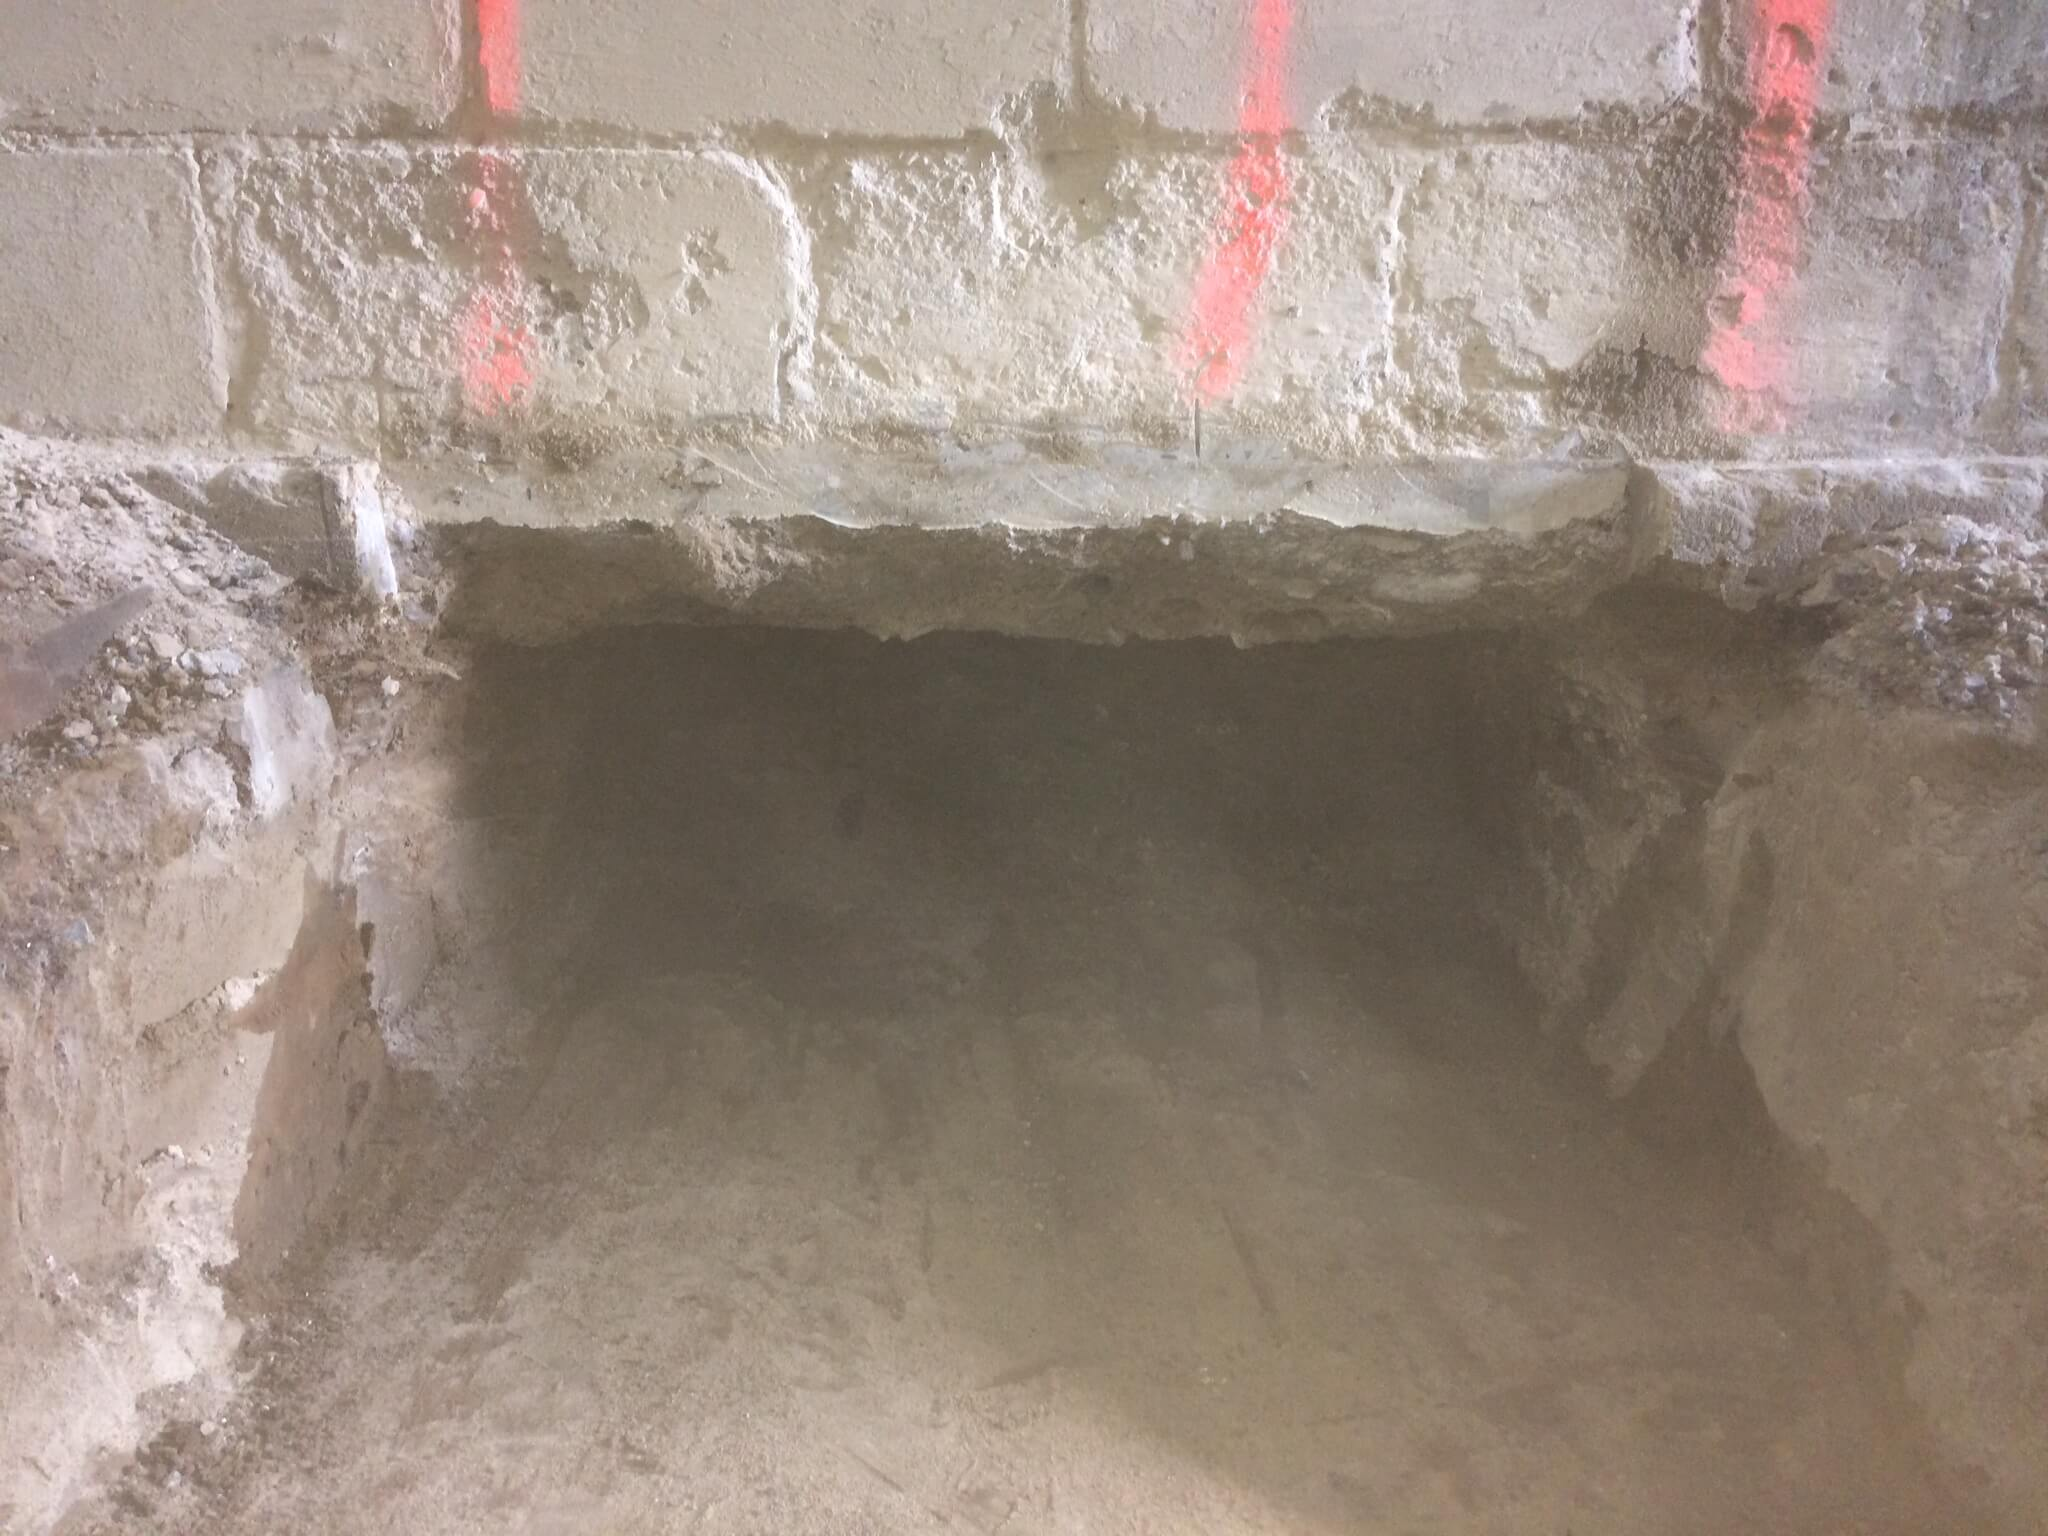 Basement-Lowering-Contractor-Toronto-Earlscourt-Ave-1